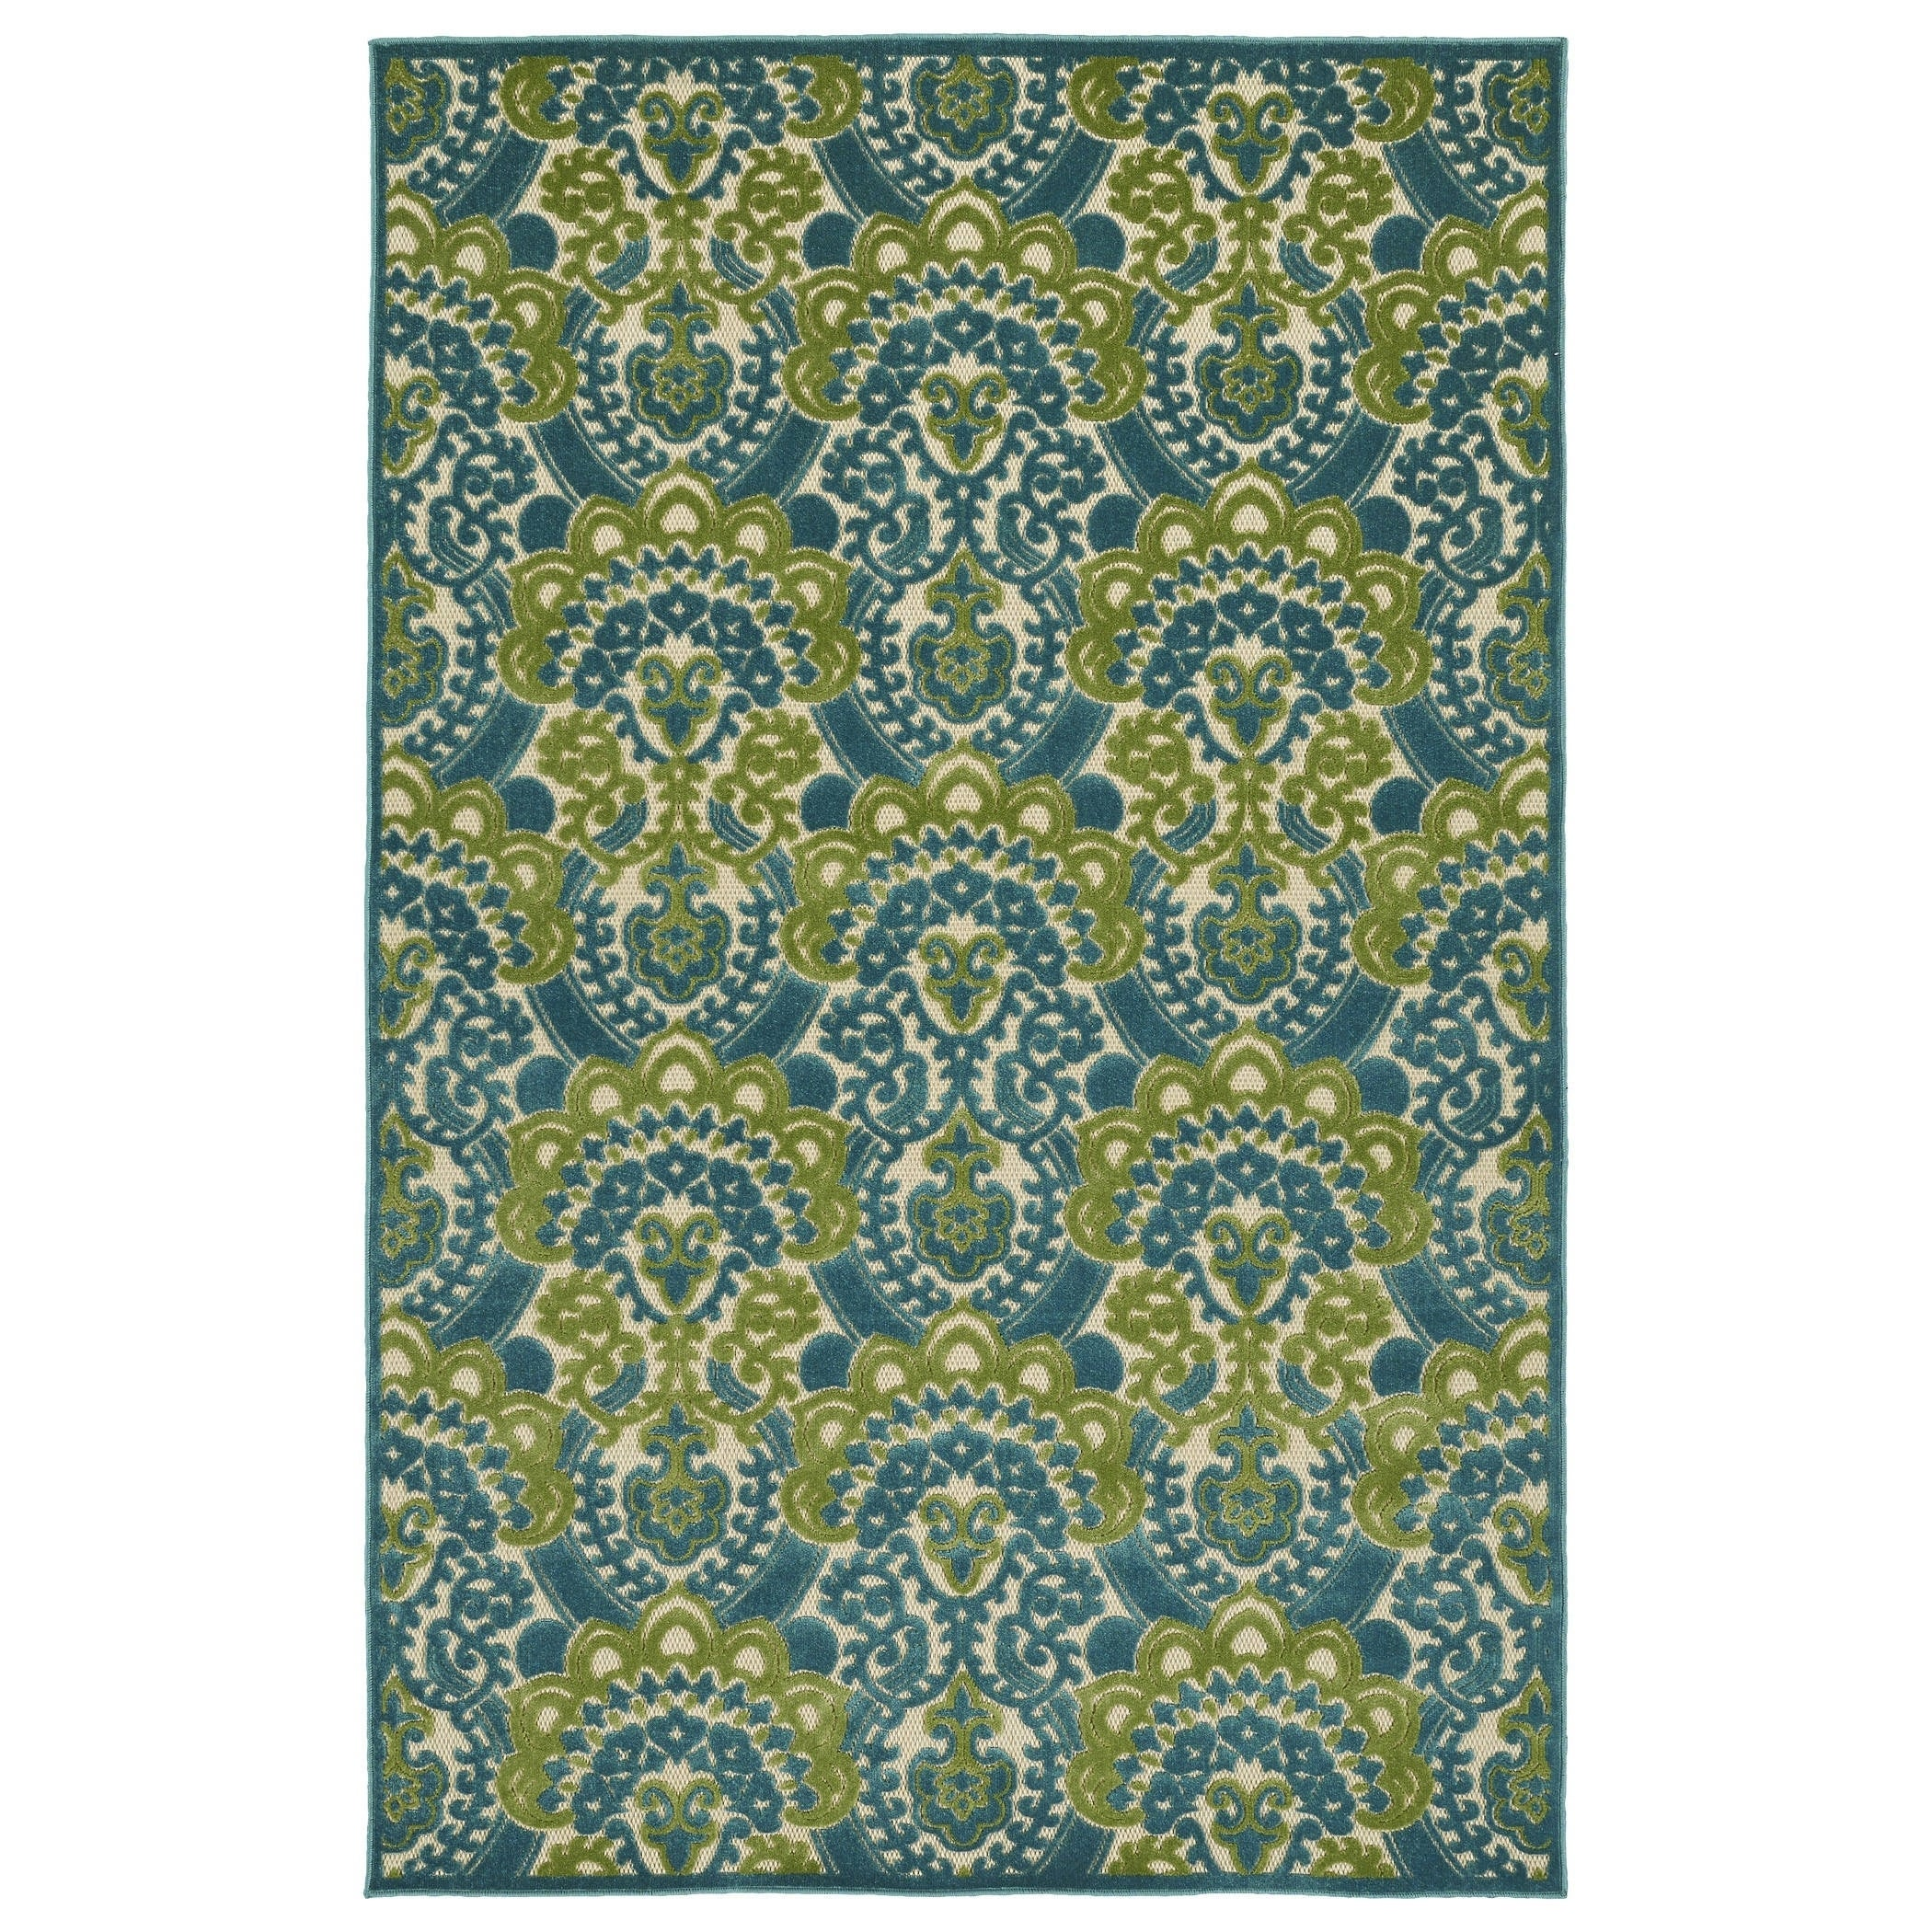 Bombay Home Indoor/Outdoor Luka Blue Damask Rug (2' x 4')...